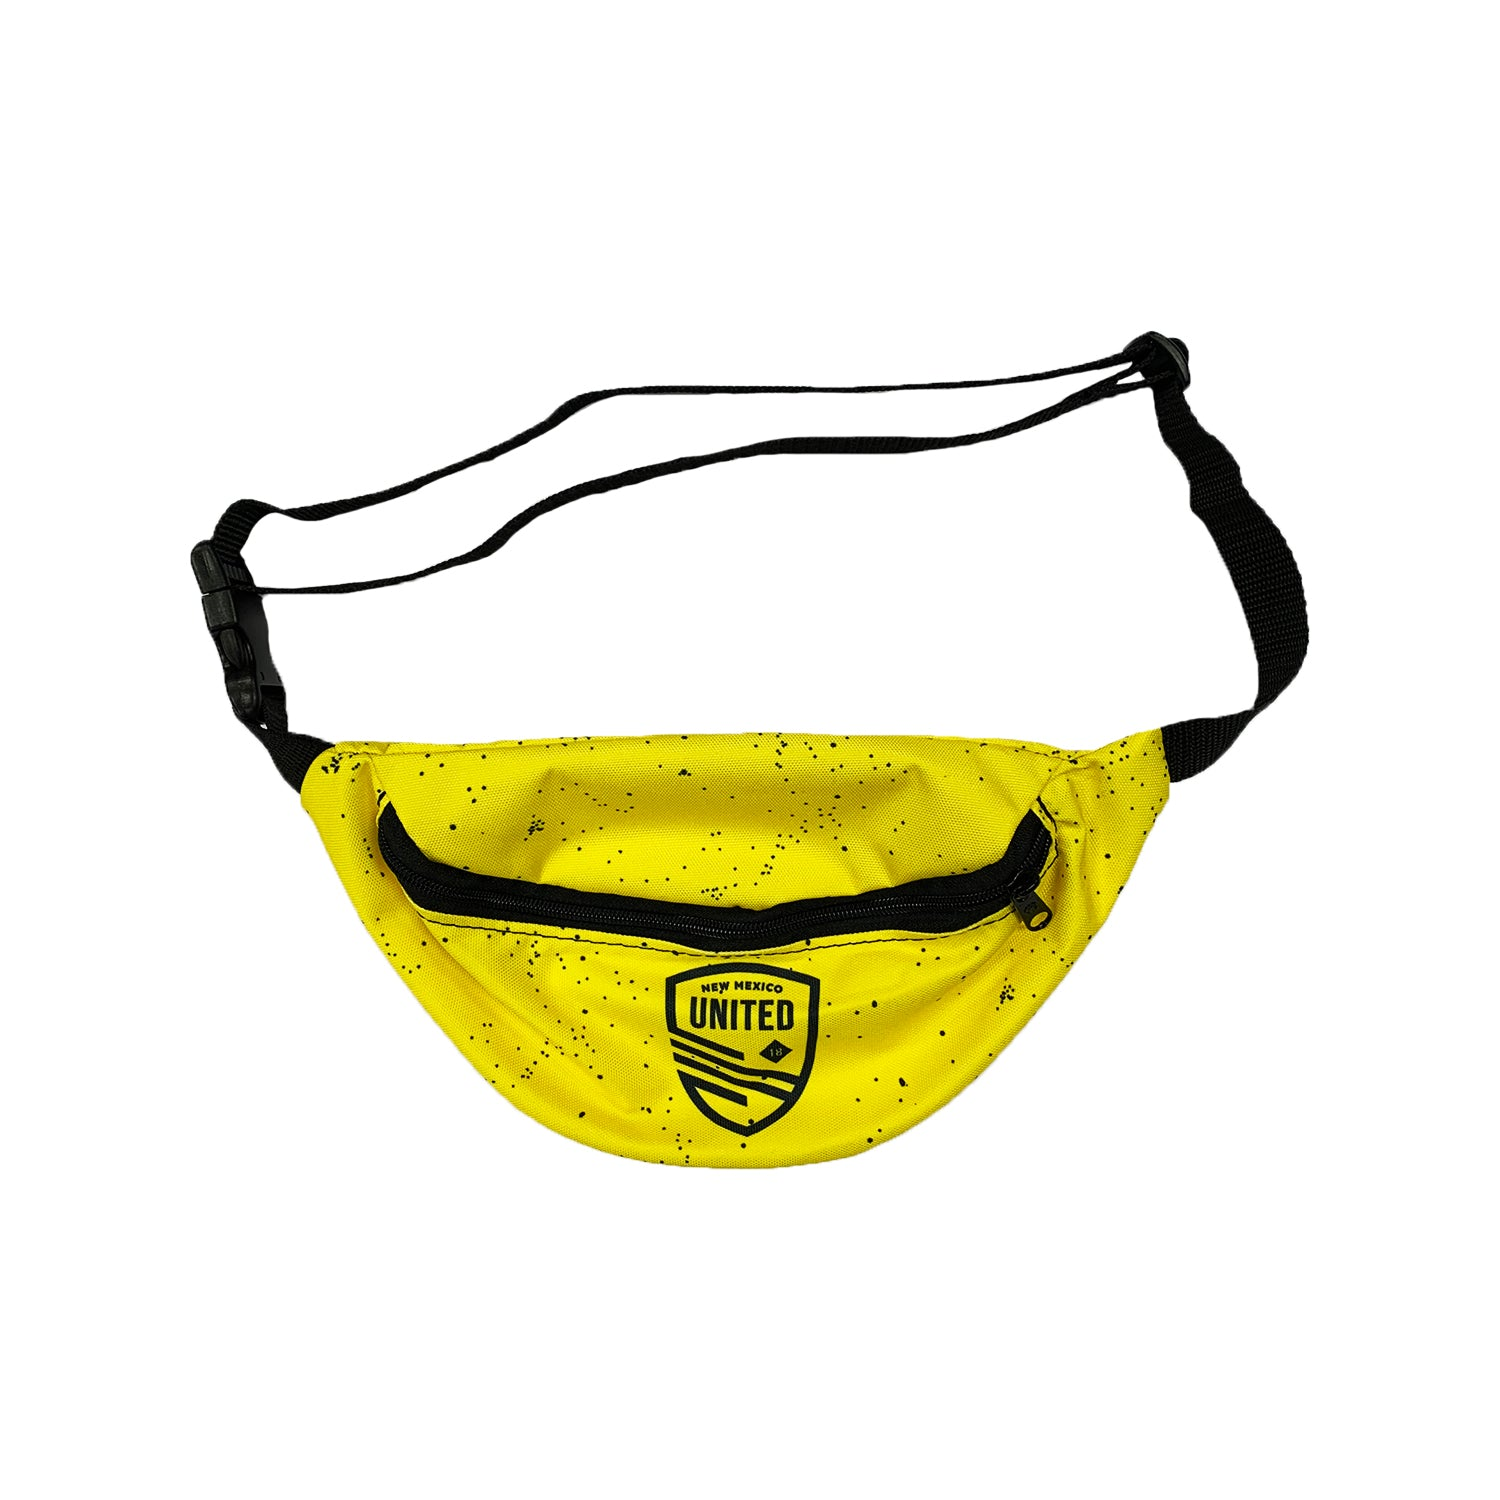 New Mexico United United Fanny Pack